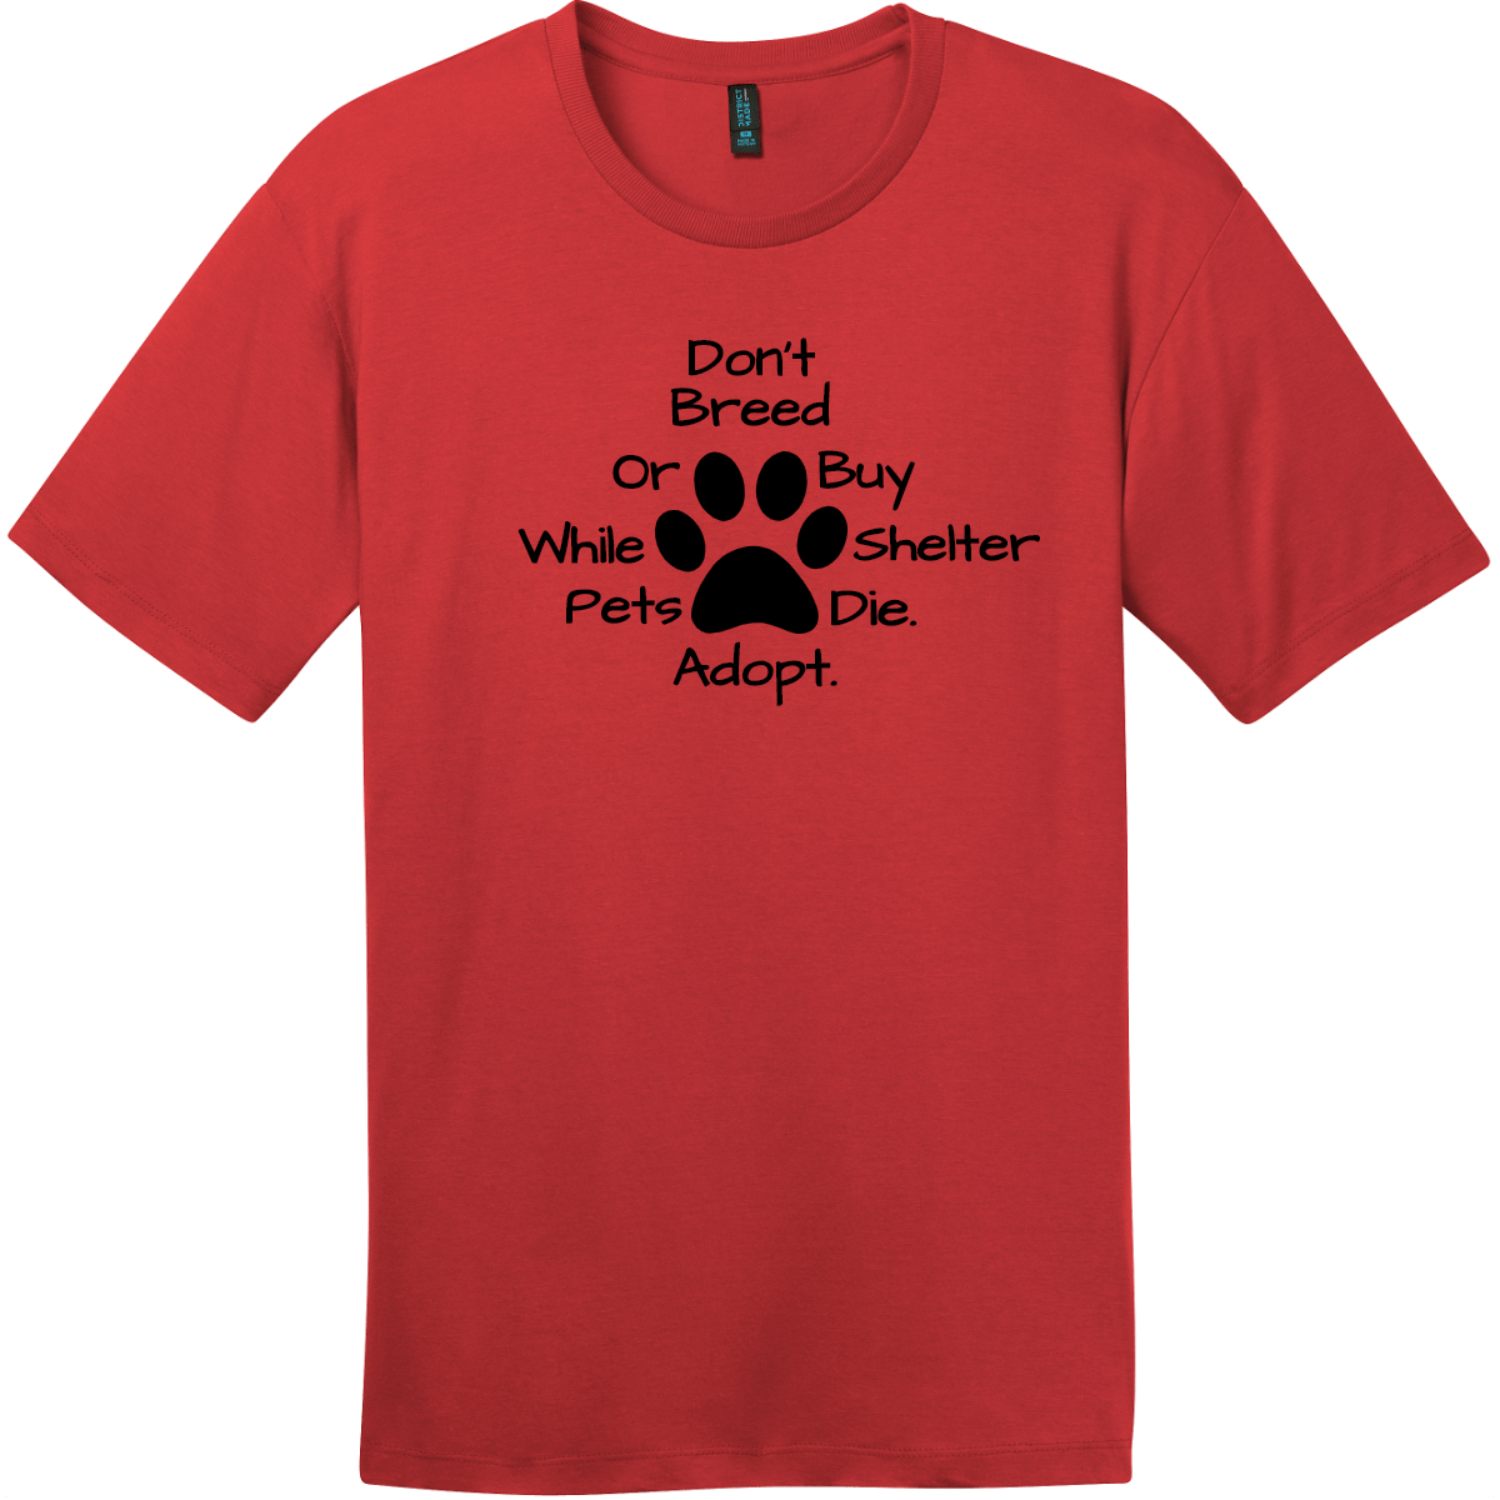 Don't Breed Or Buy While Shelter Pets Die T-Shirt Classic Red District Perfect Weight Tee DT104